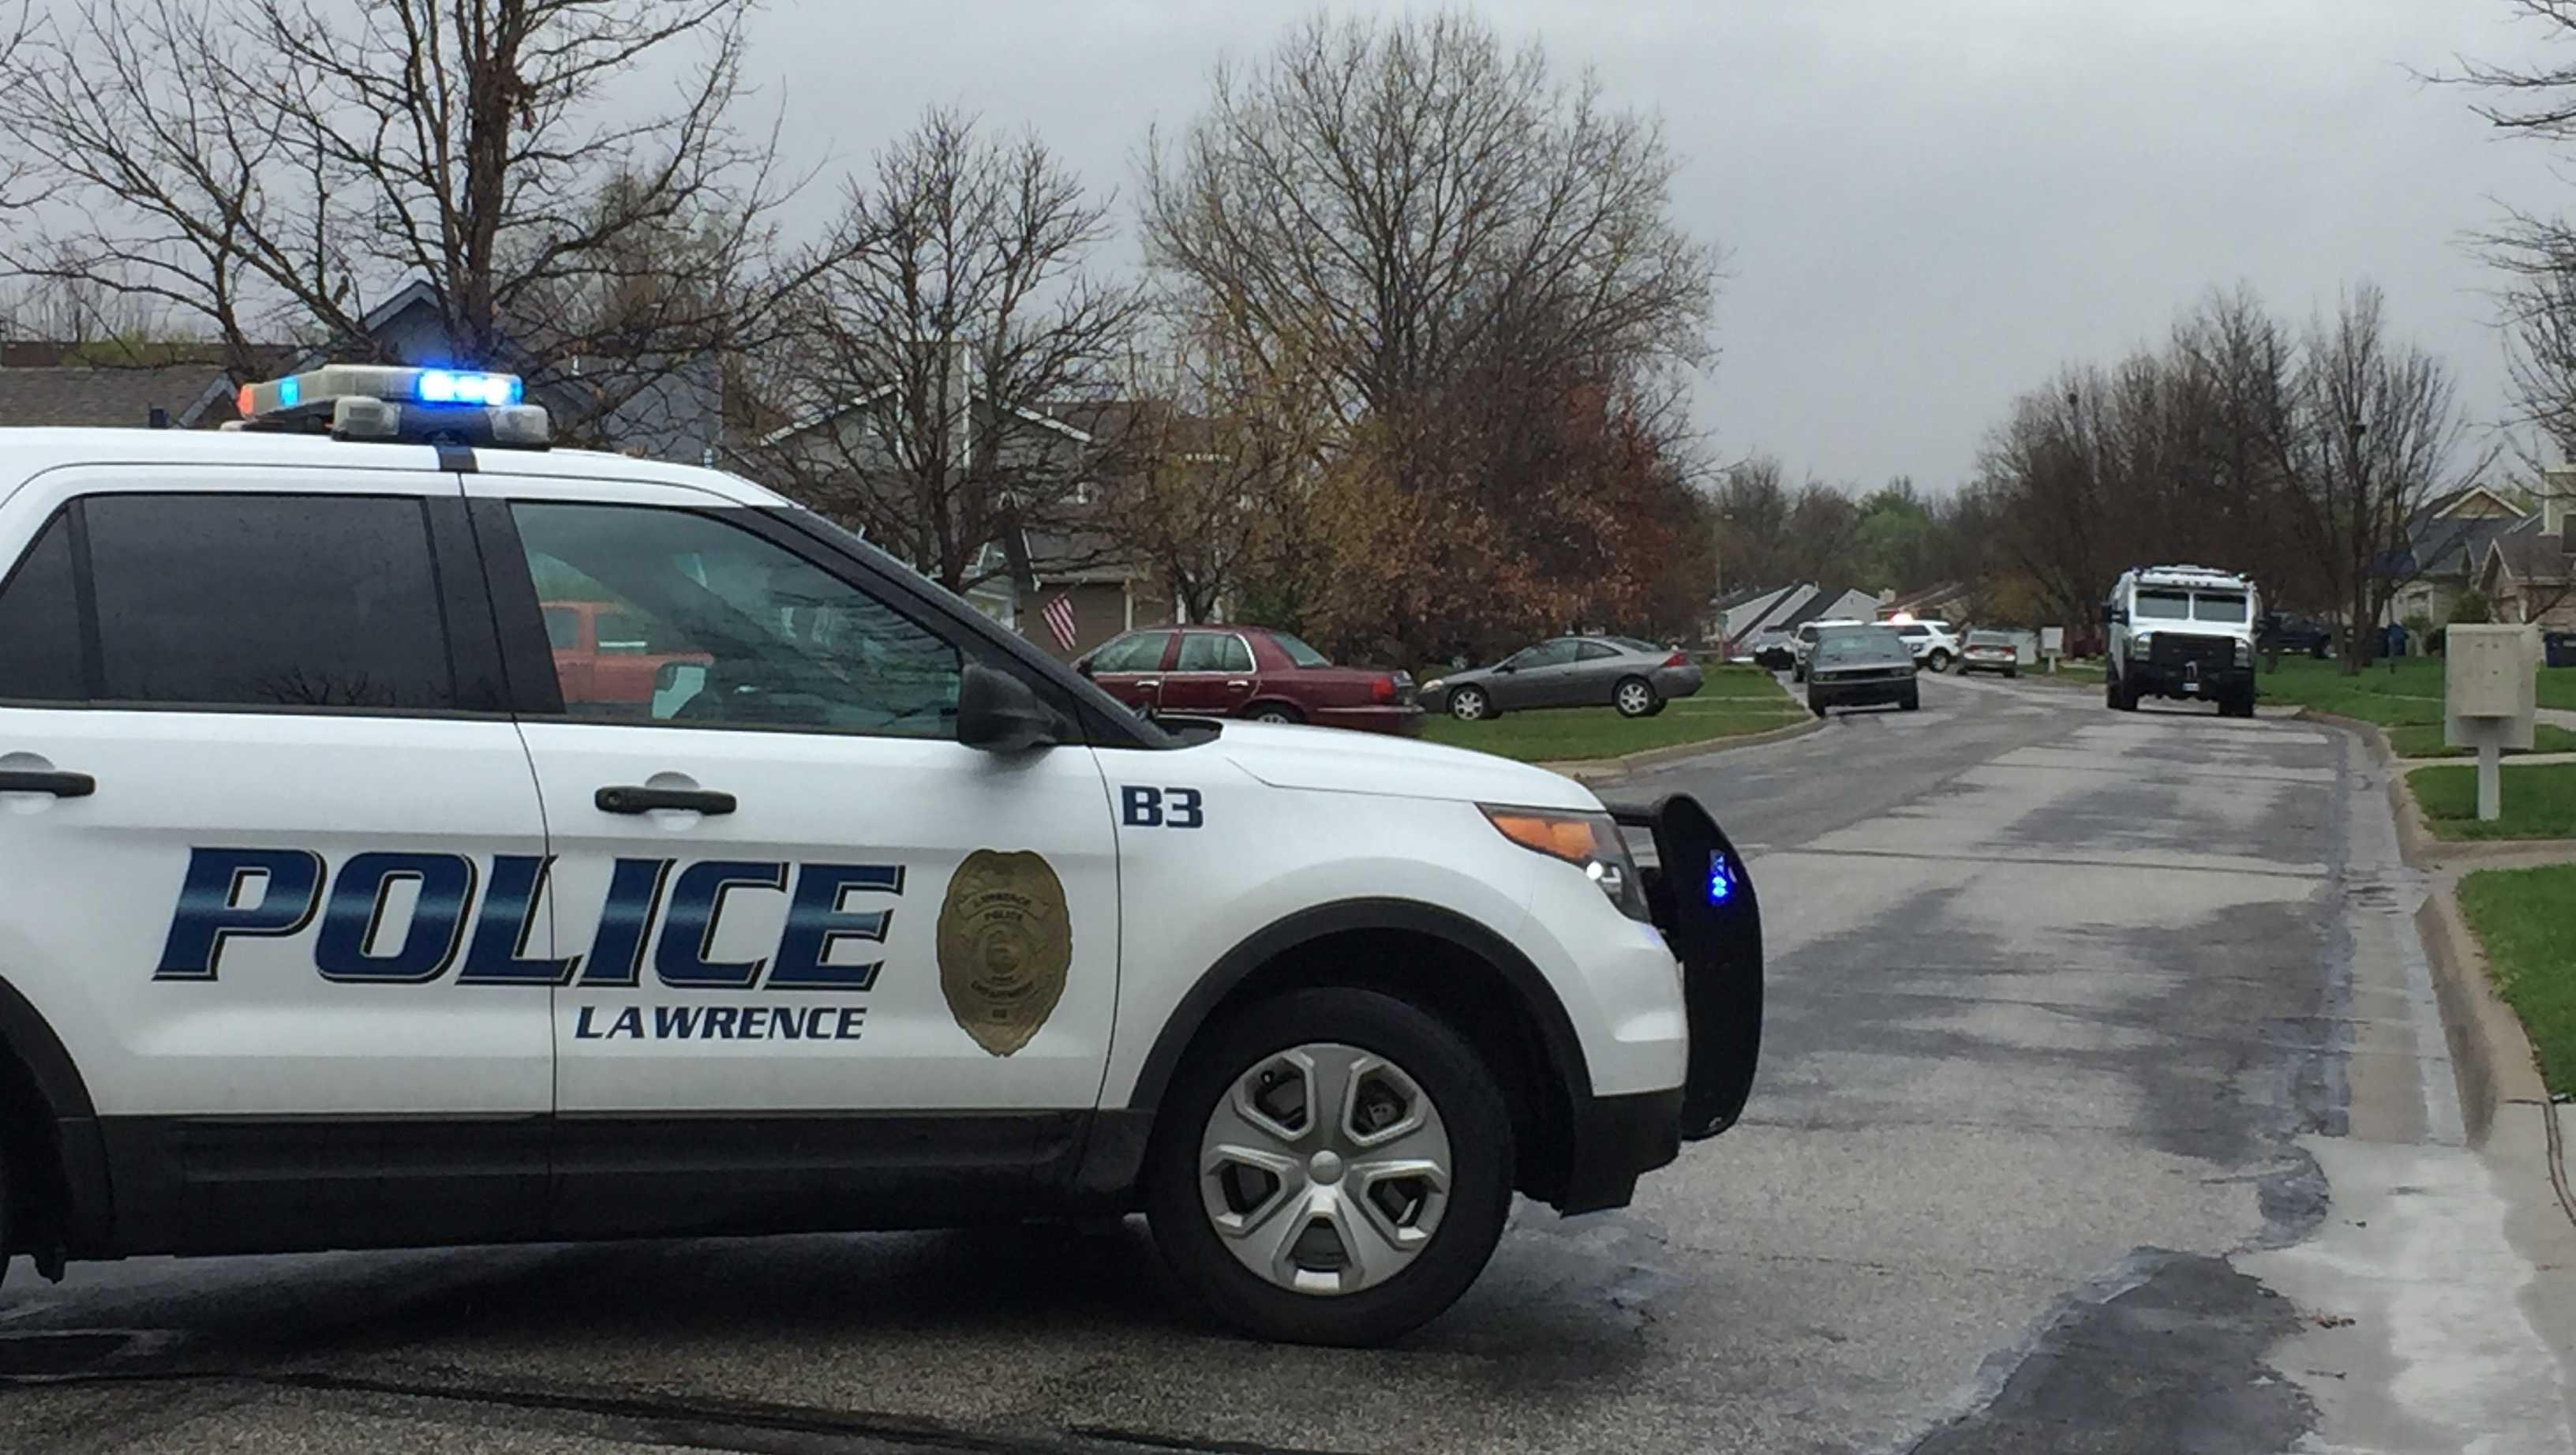 Lawrence police standoff